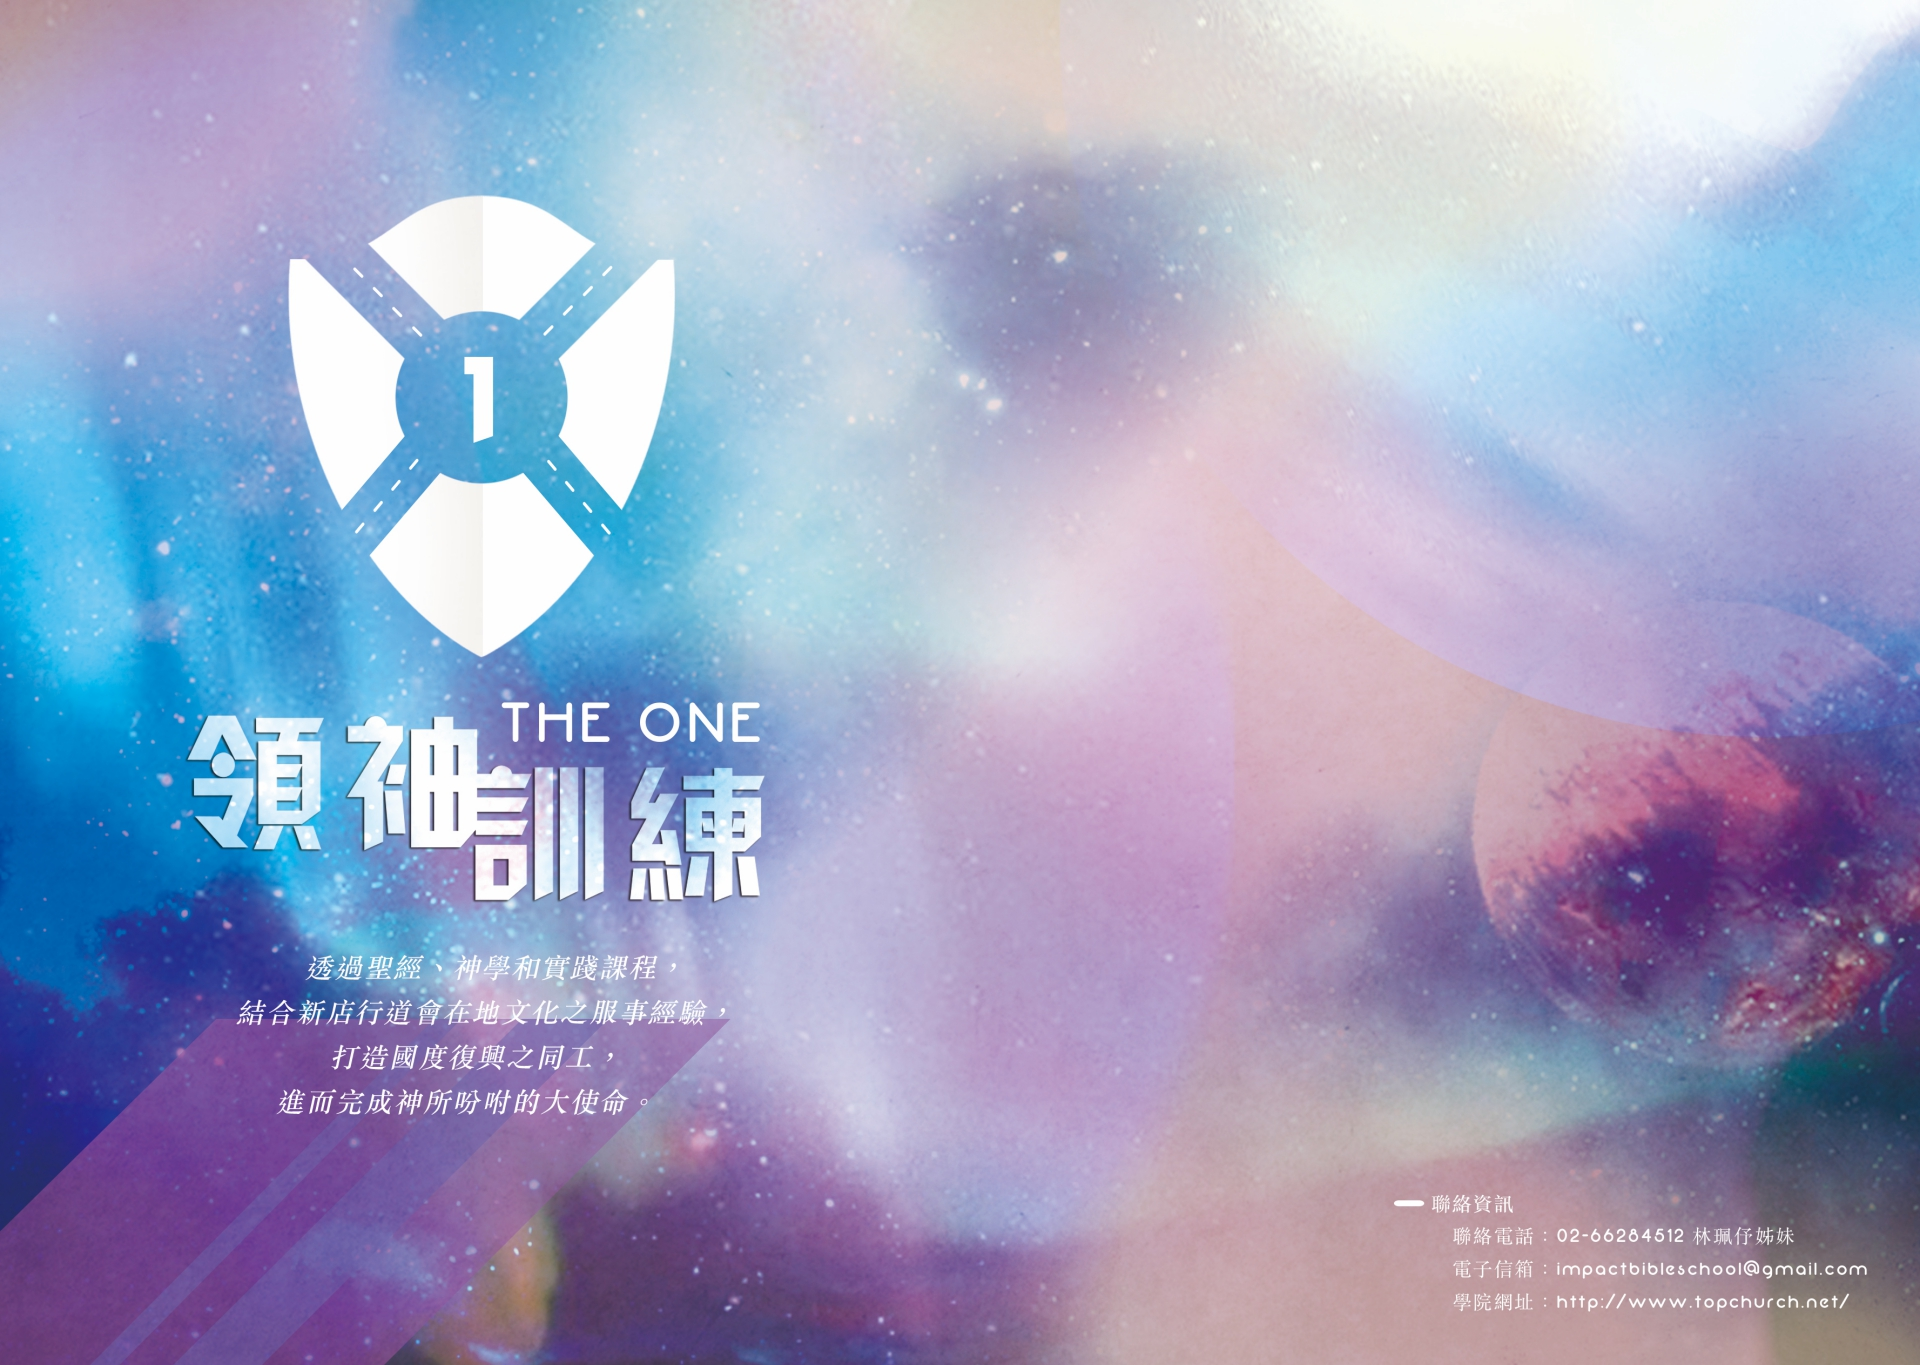 The One 領袖訓練